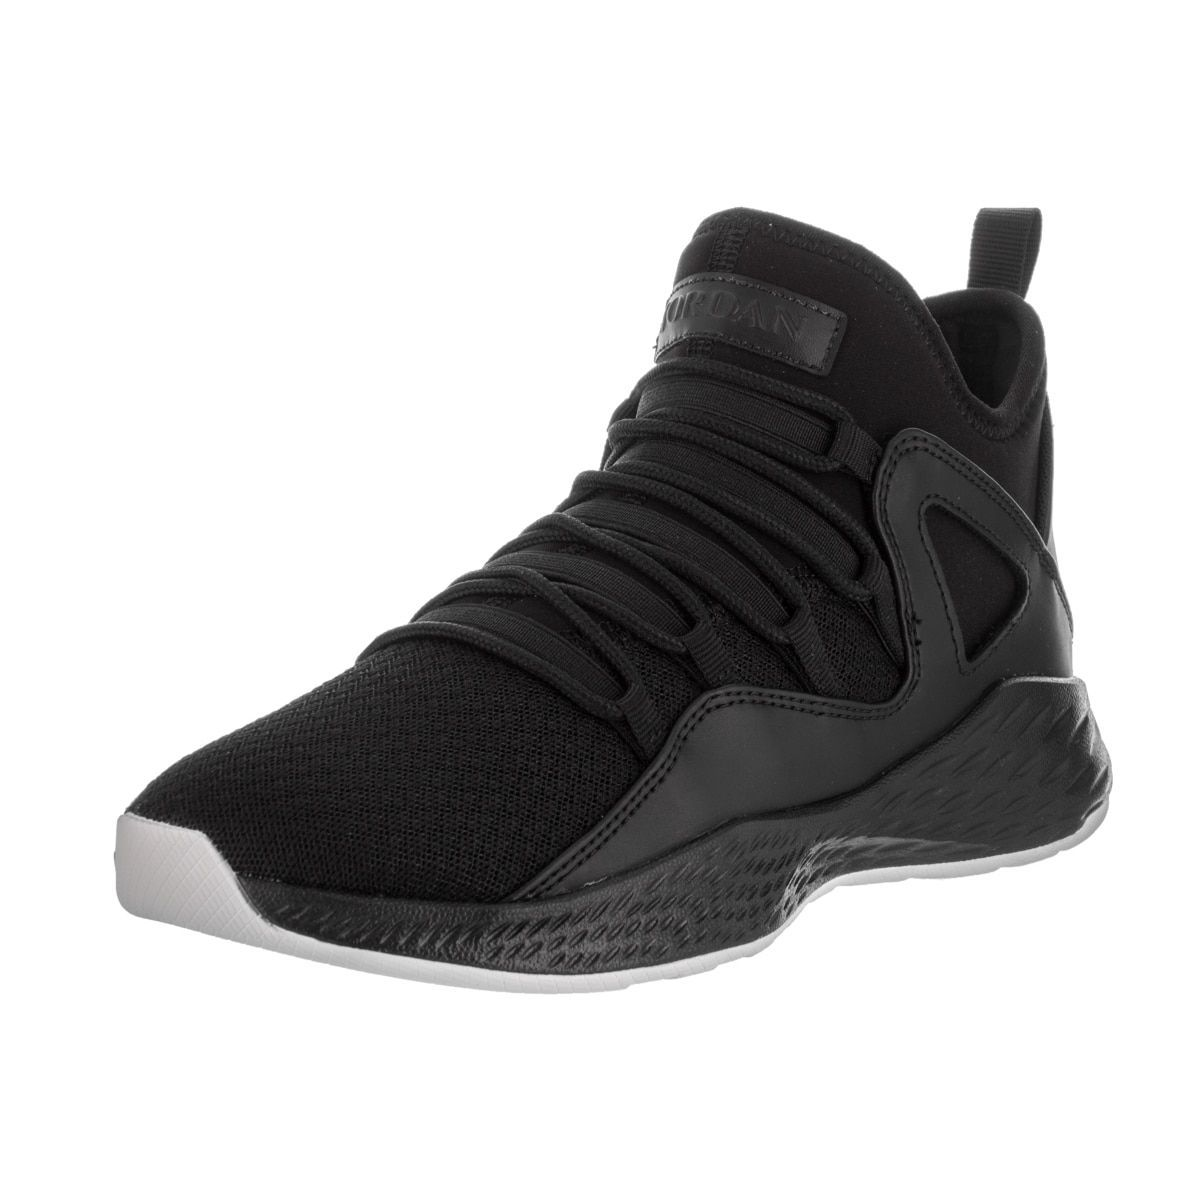 Nike Jordan Kids' Jordan Formula 23 Bg Synthetic- Basketball Shoes